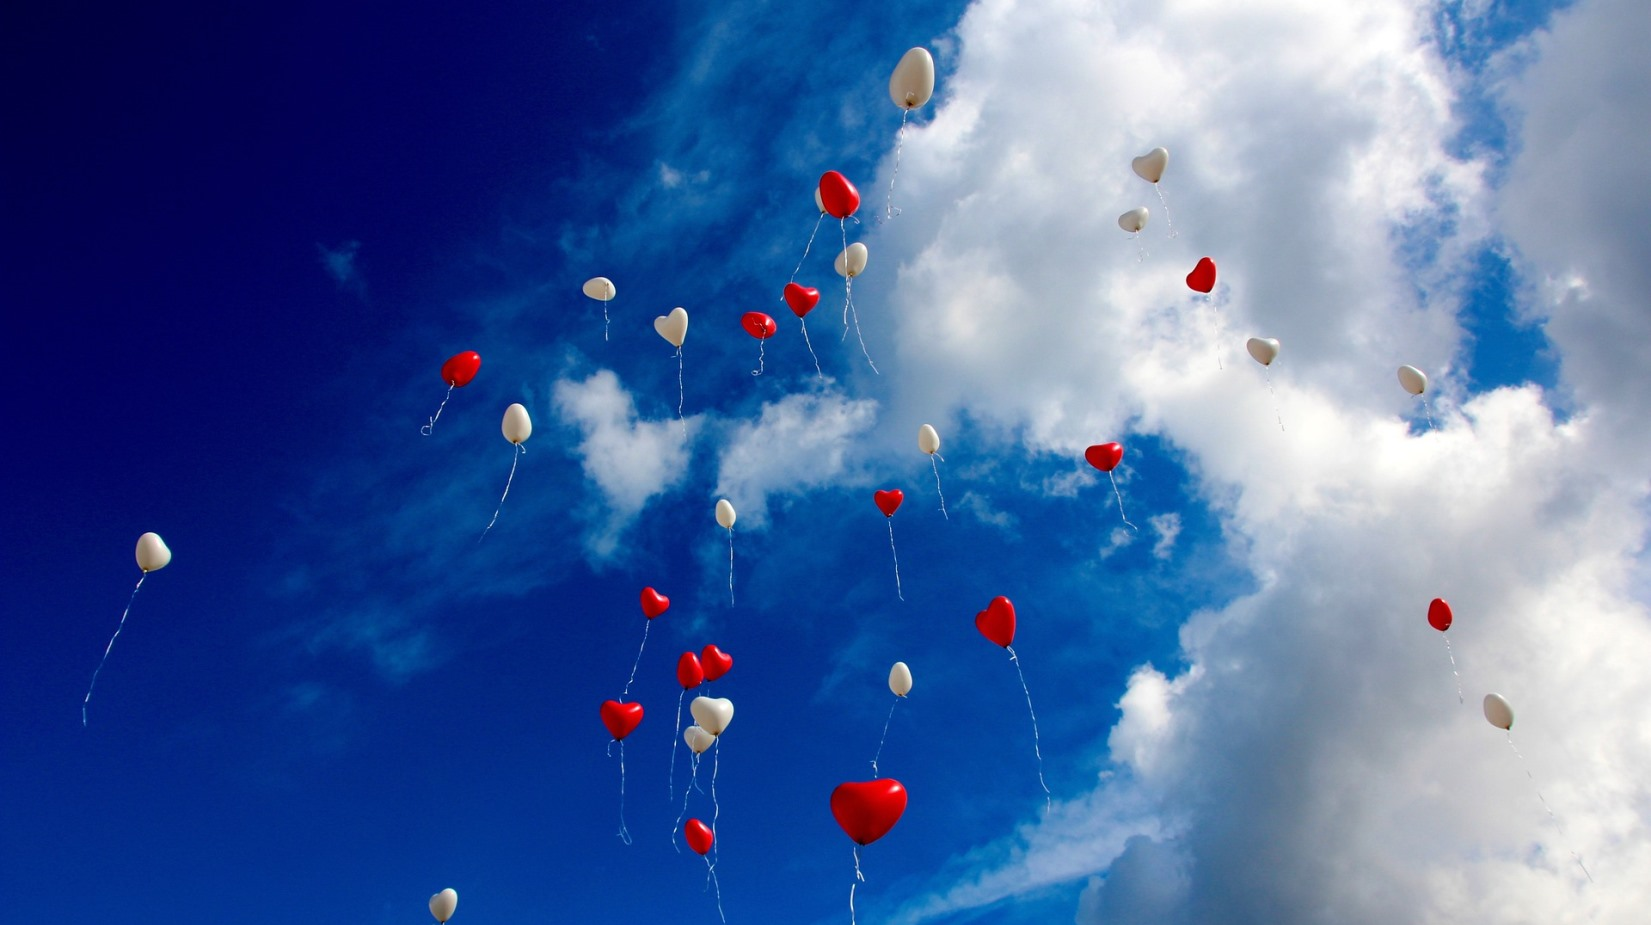 Red and white heart balloons in the sky